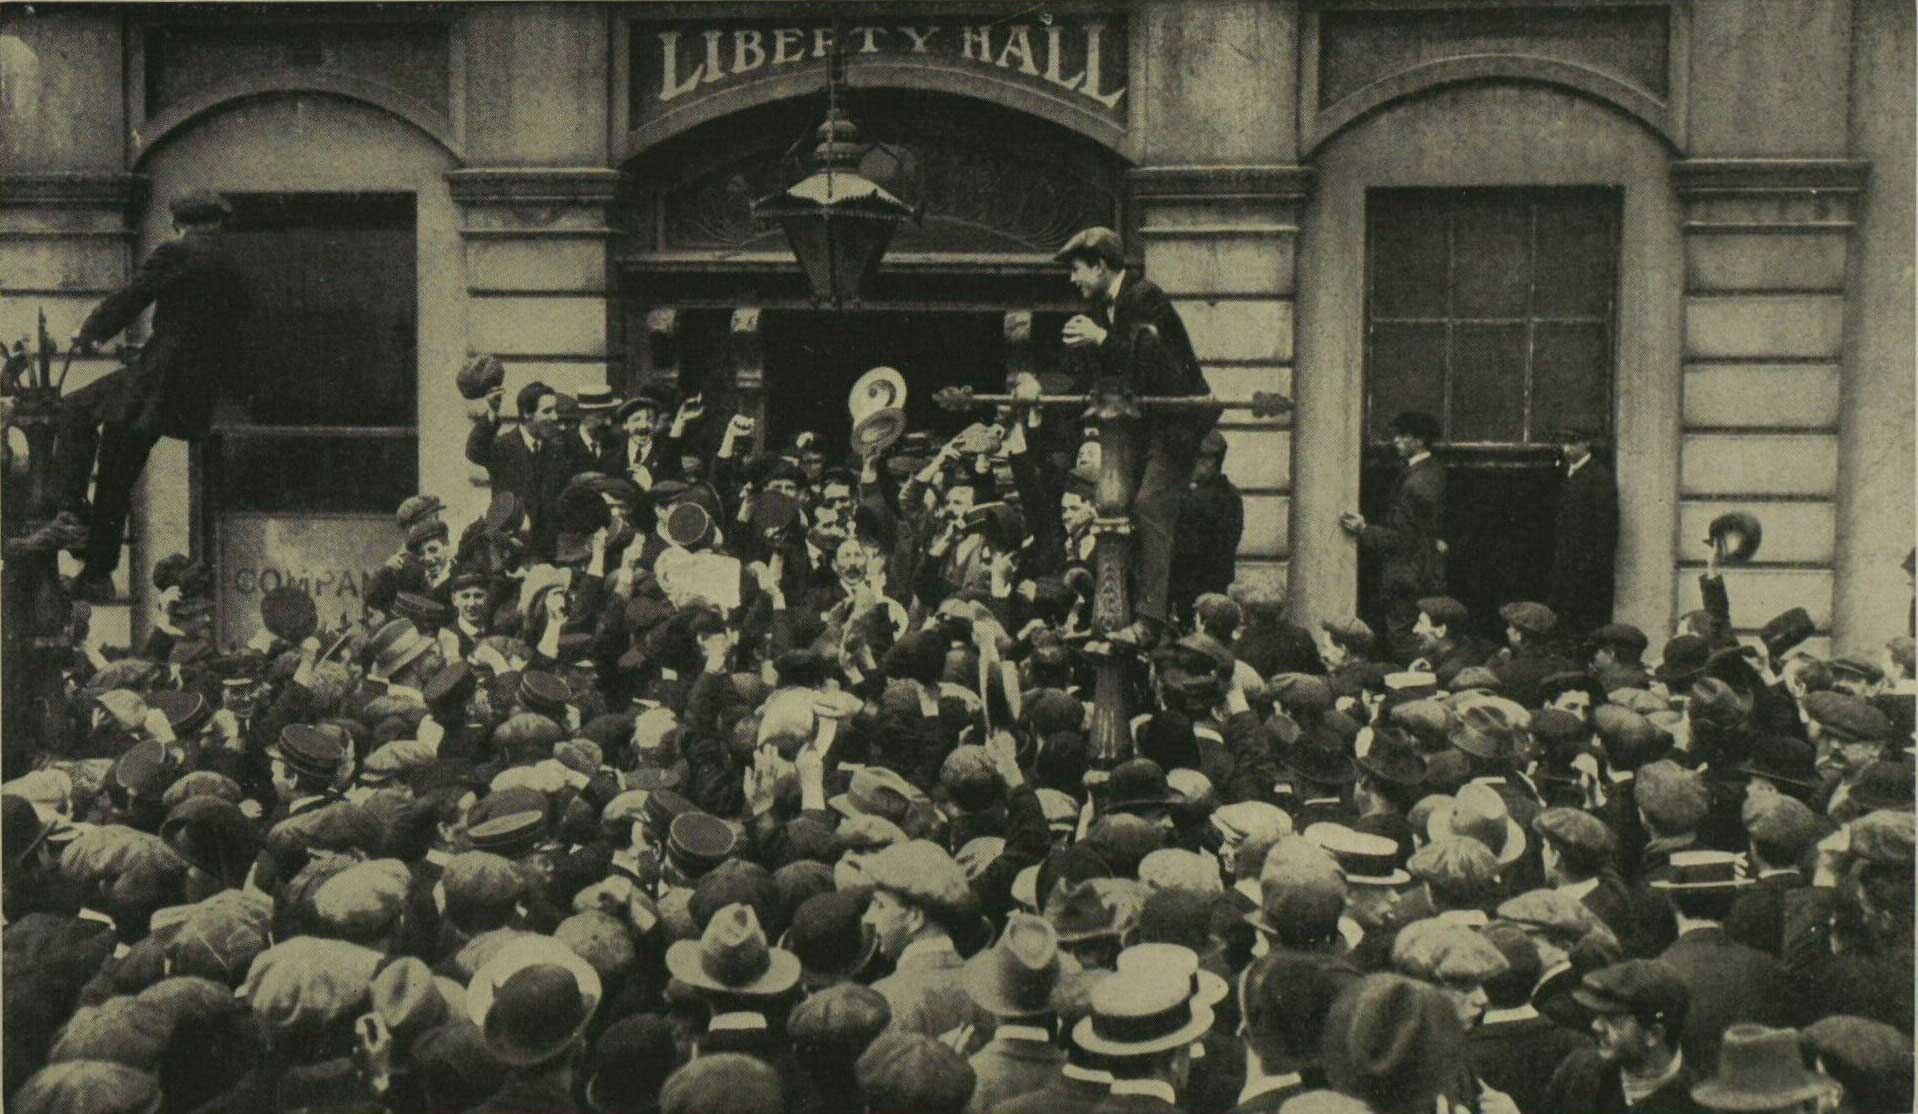 Rally at  Liberty Hall 1913